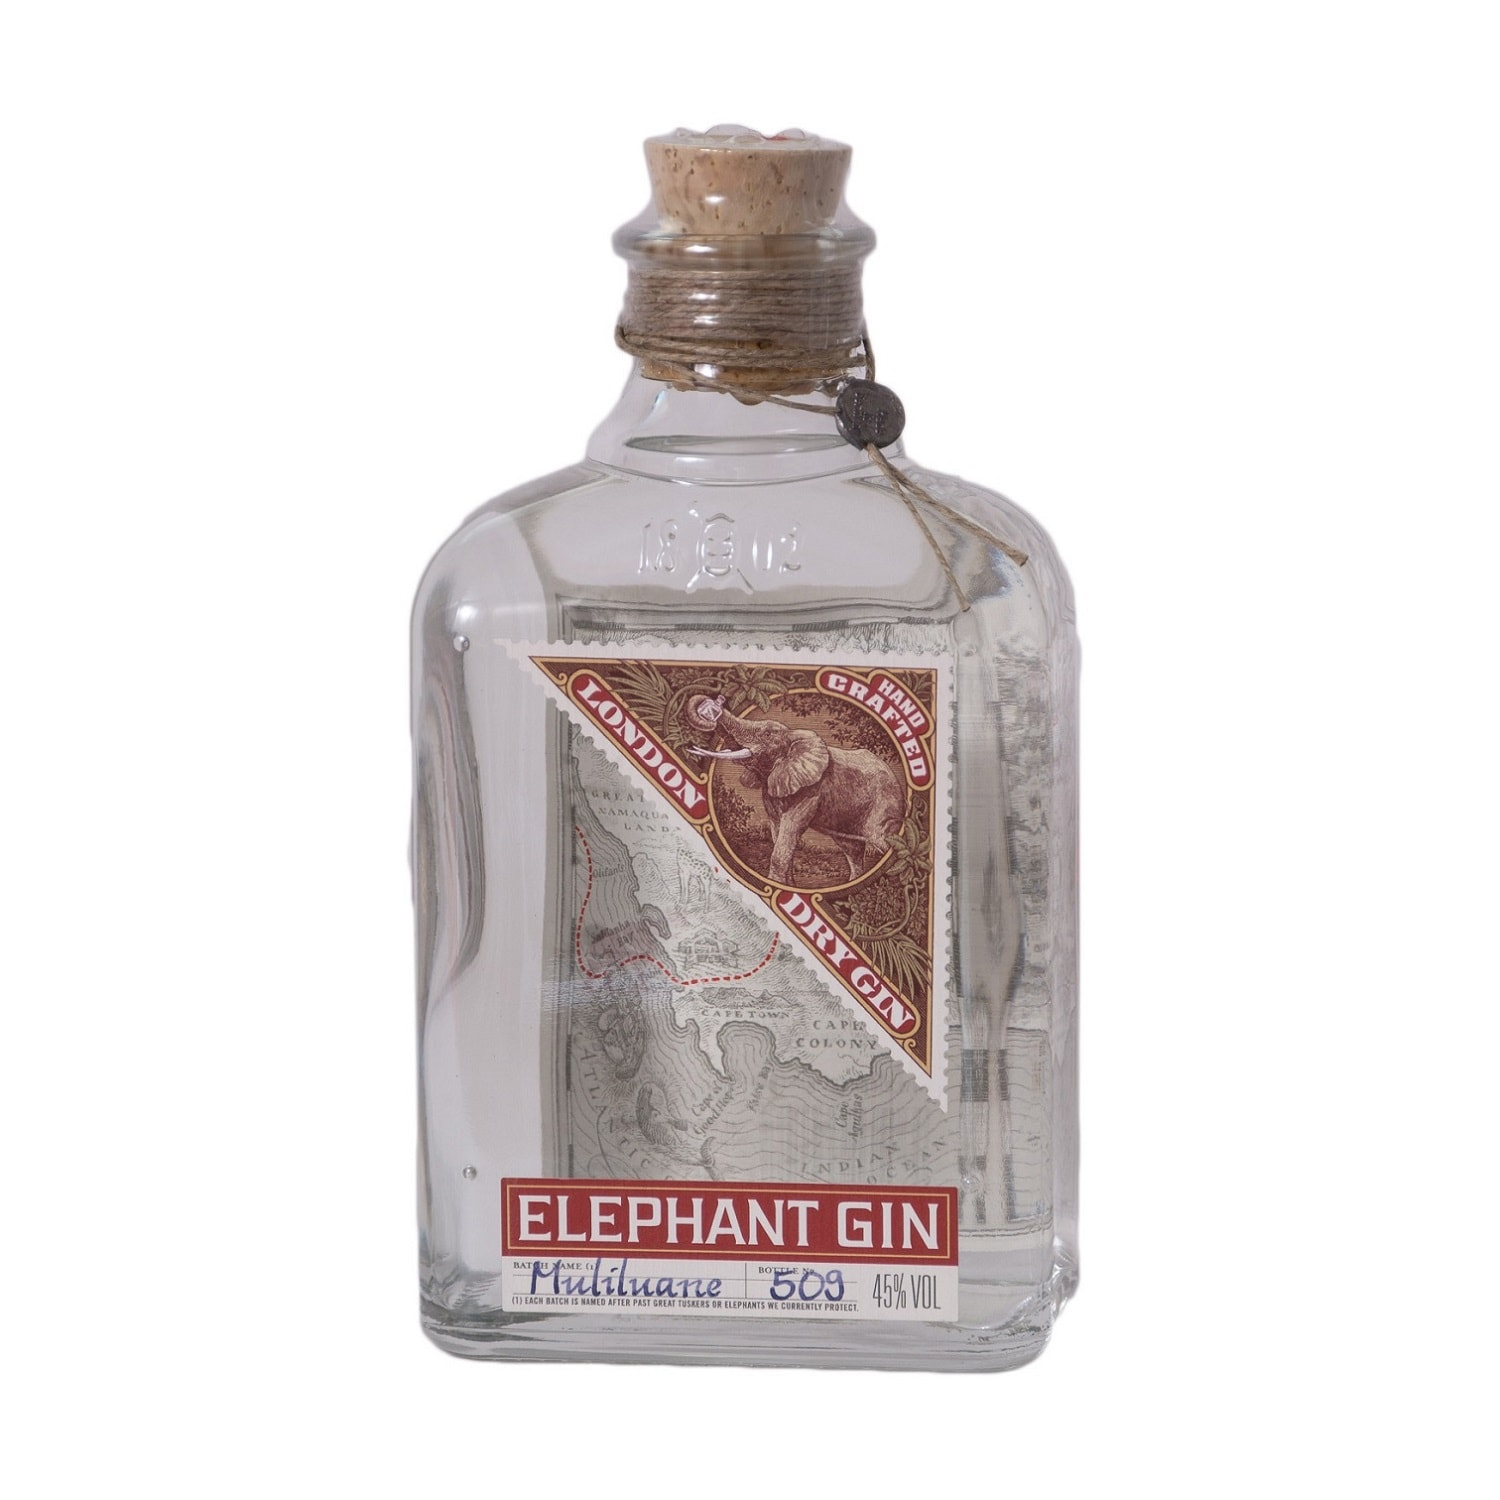 Elephant Gin London Dry Gin 50ml